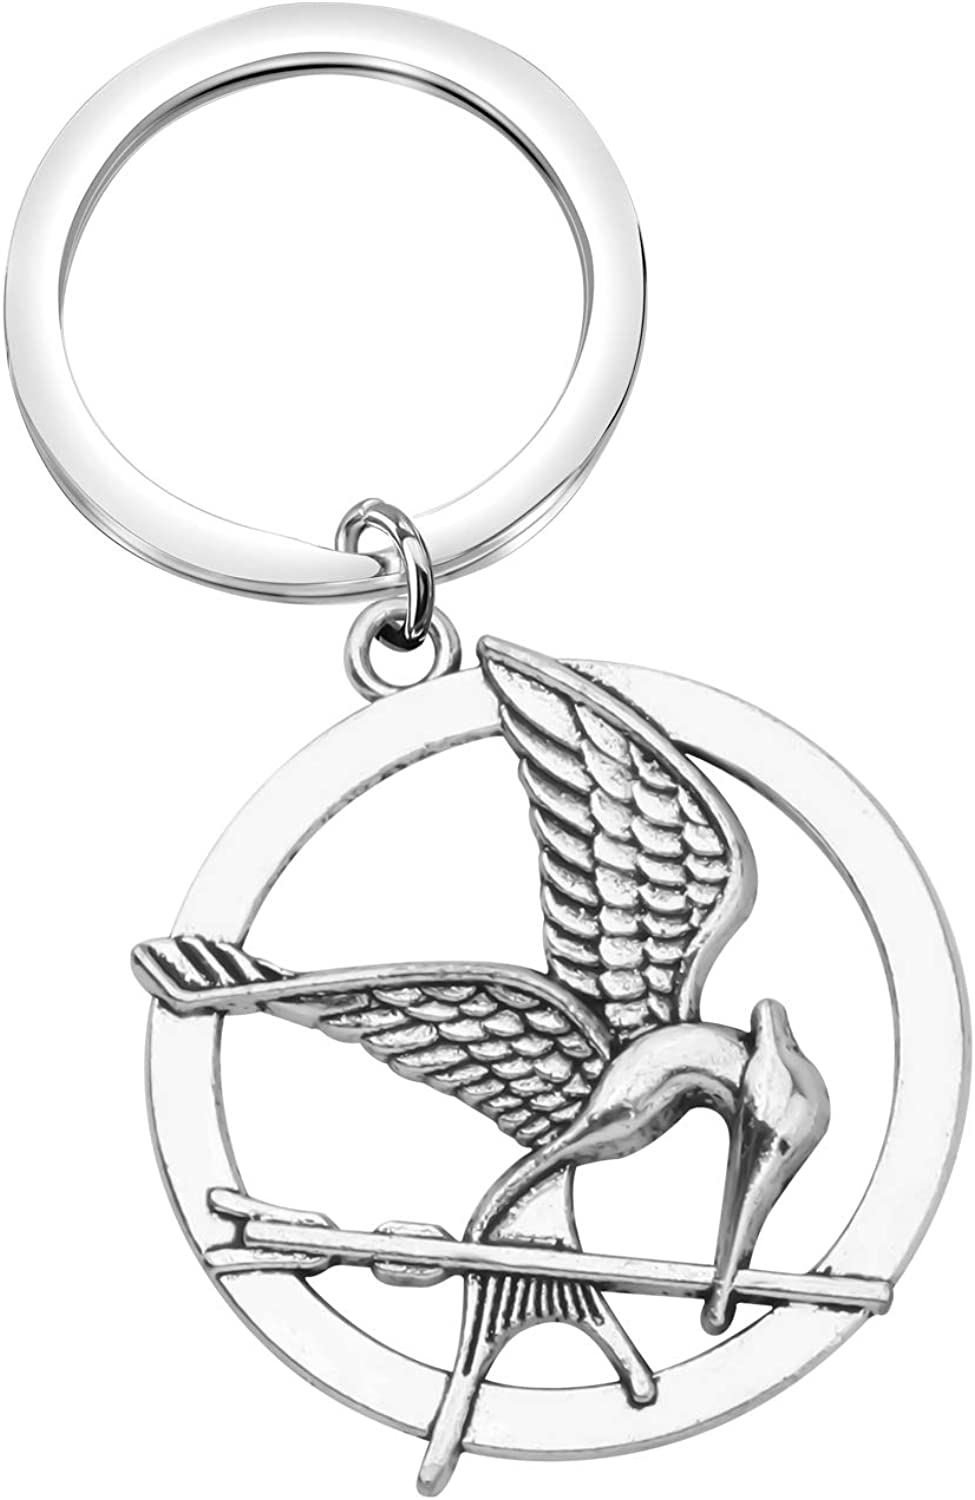 SEIRAA The Hunger Games Movie Mockingjay Jewelry Arrow Jewelry Bird with Arrow Circular Keychain for Movie Fans